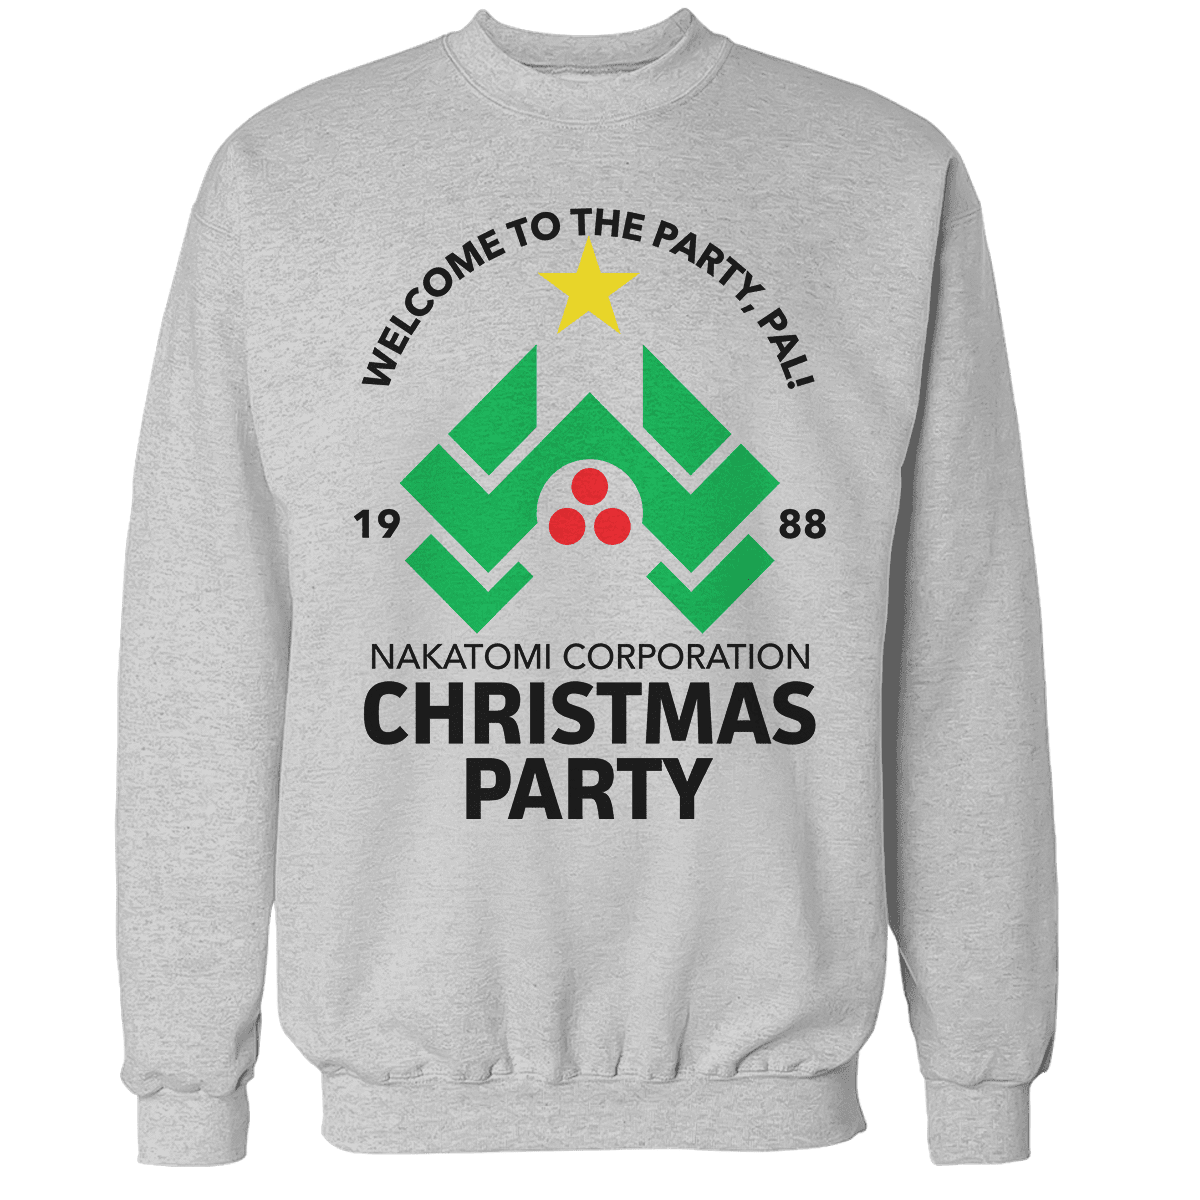 die hard christmas party unisex sweatshirt die hard christmas party unisex sweatshirt